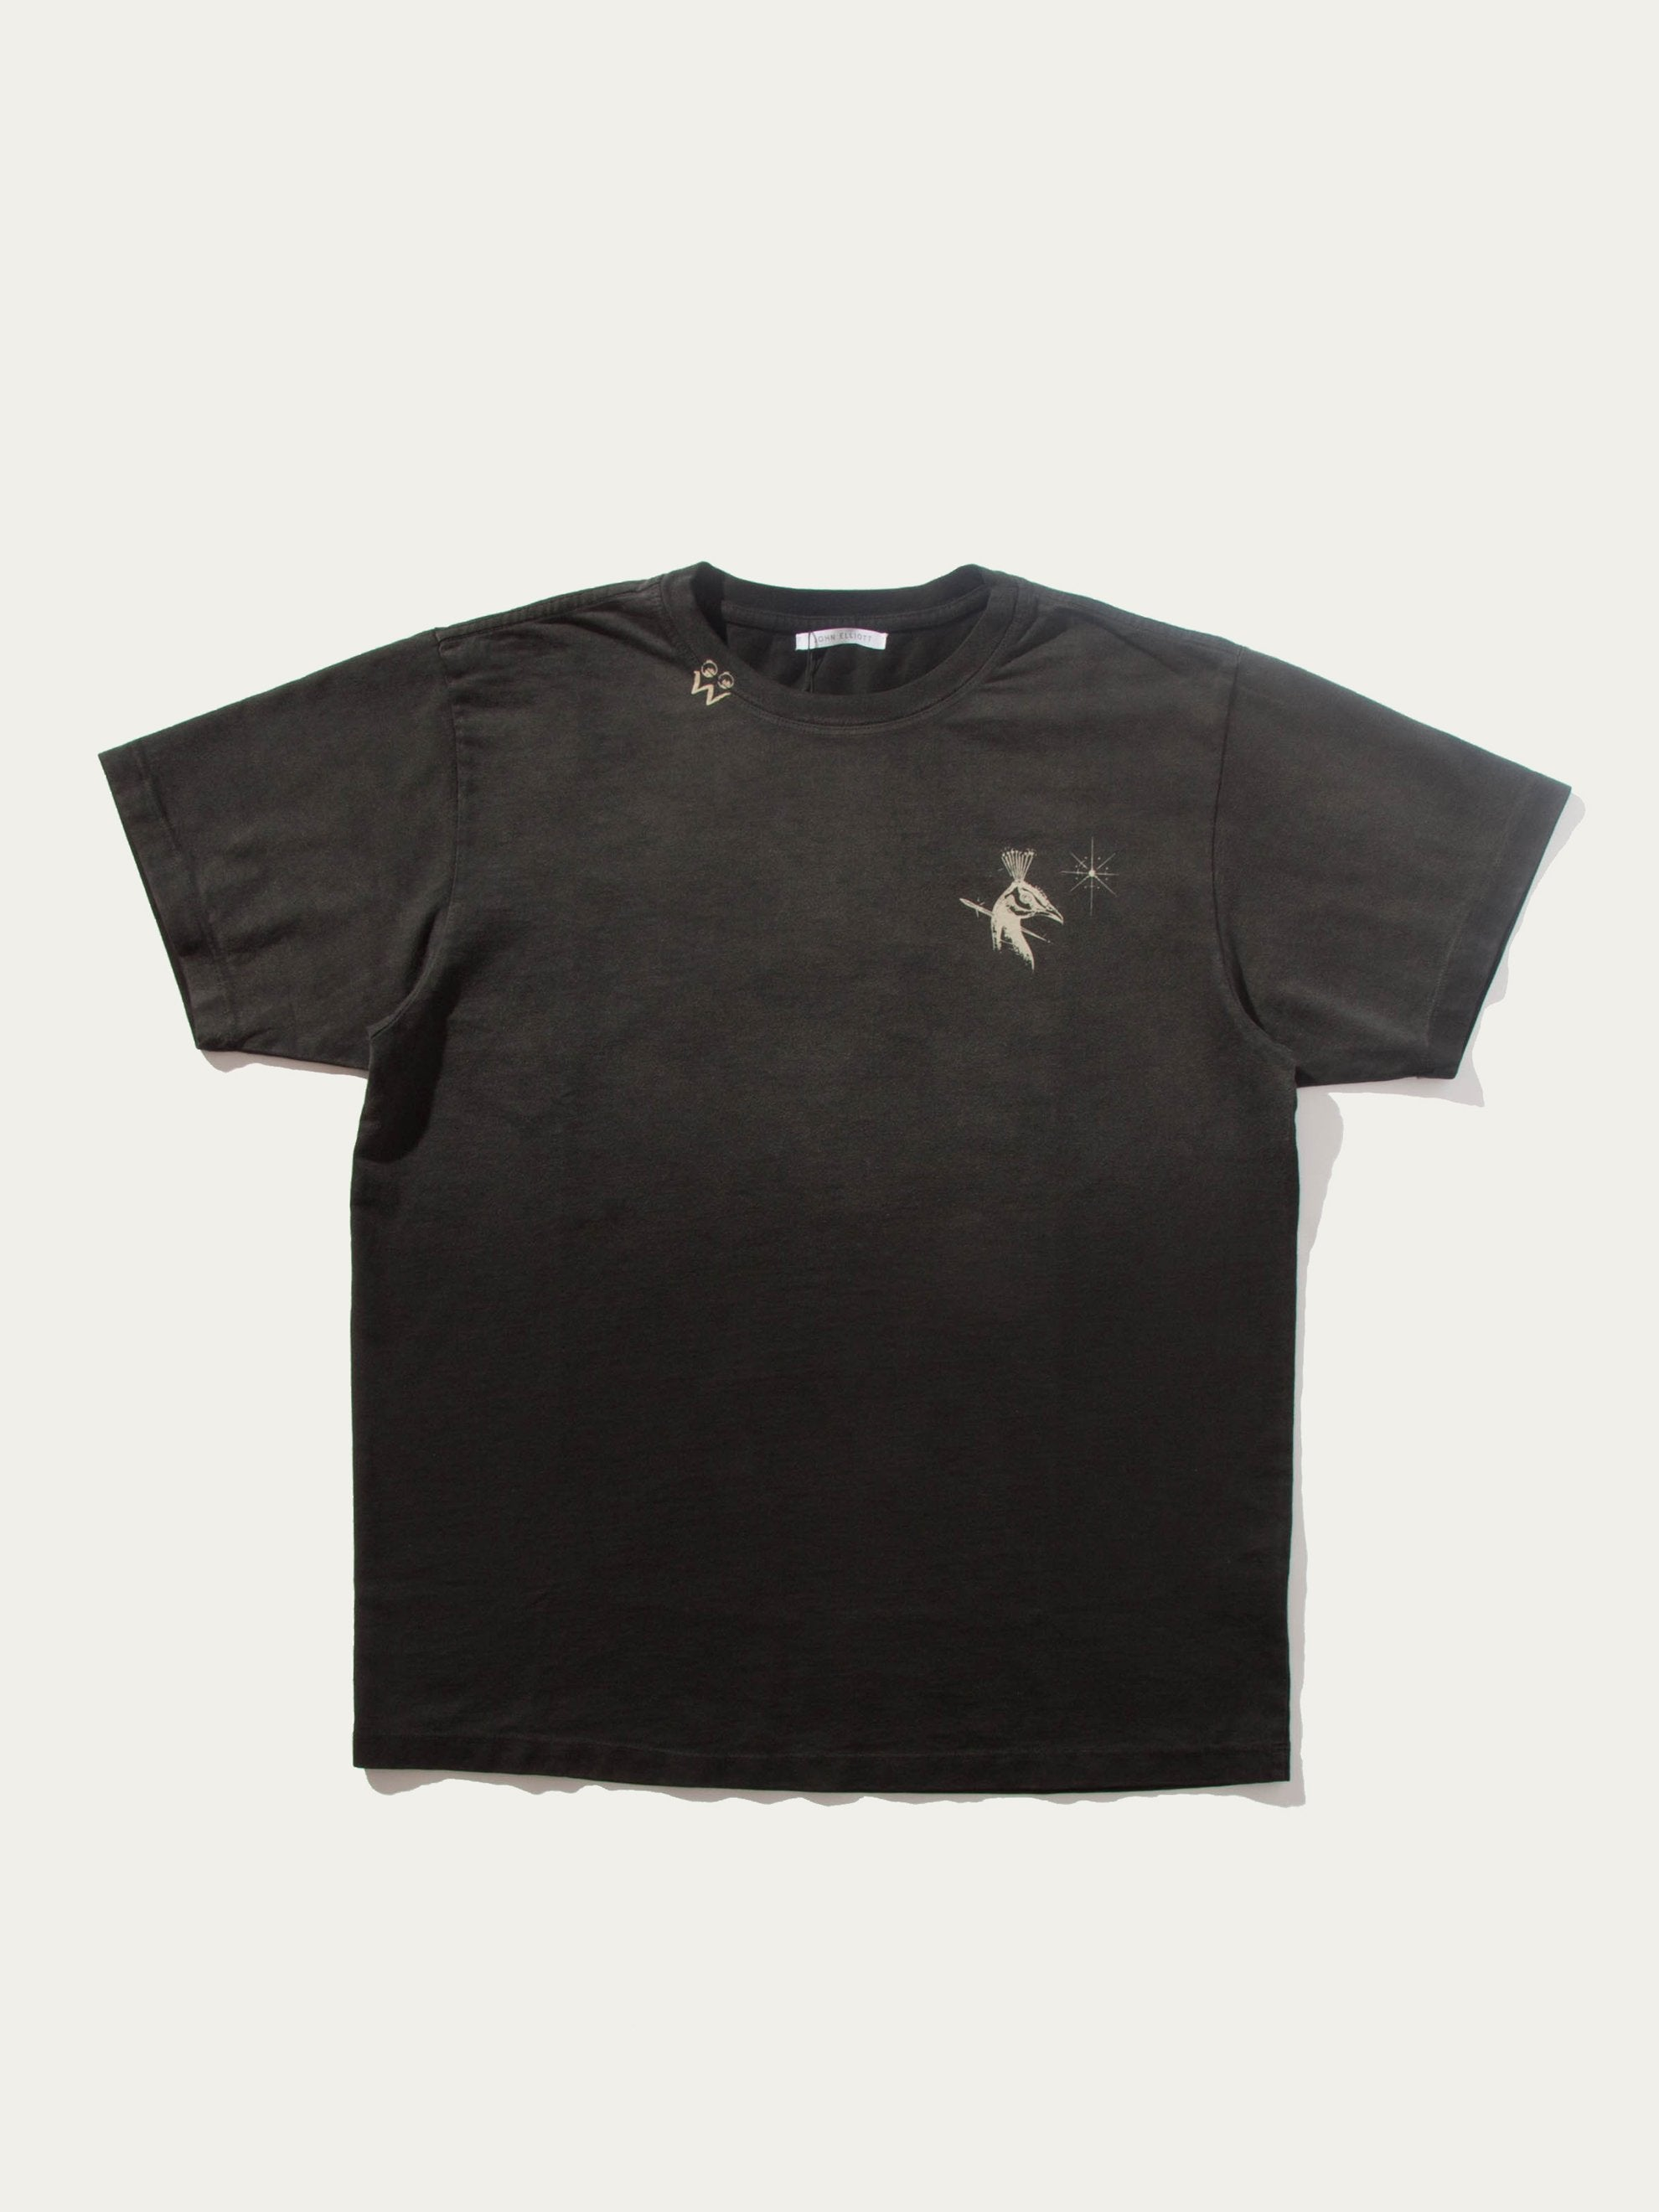 Black Washed T-Shirt (John Elliott x Dr. Woo UNION Capsule) 1